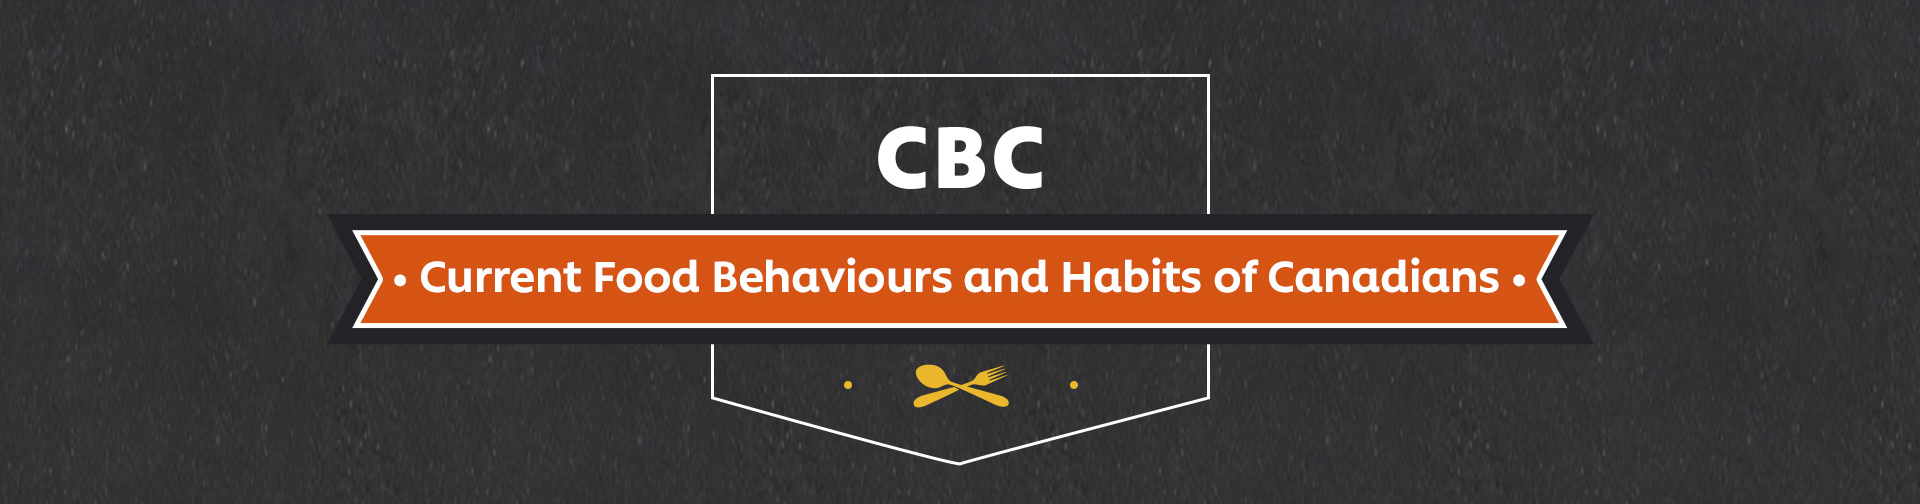 Research: Current Food Behaviours and Habits of Canadians